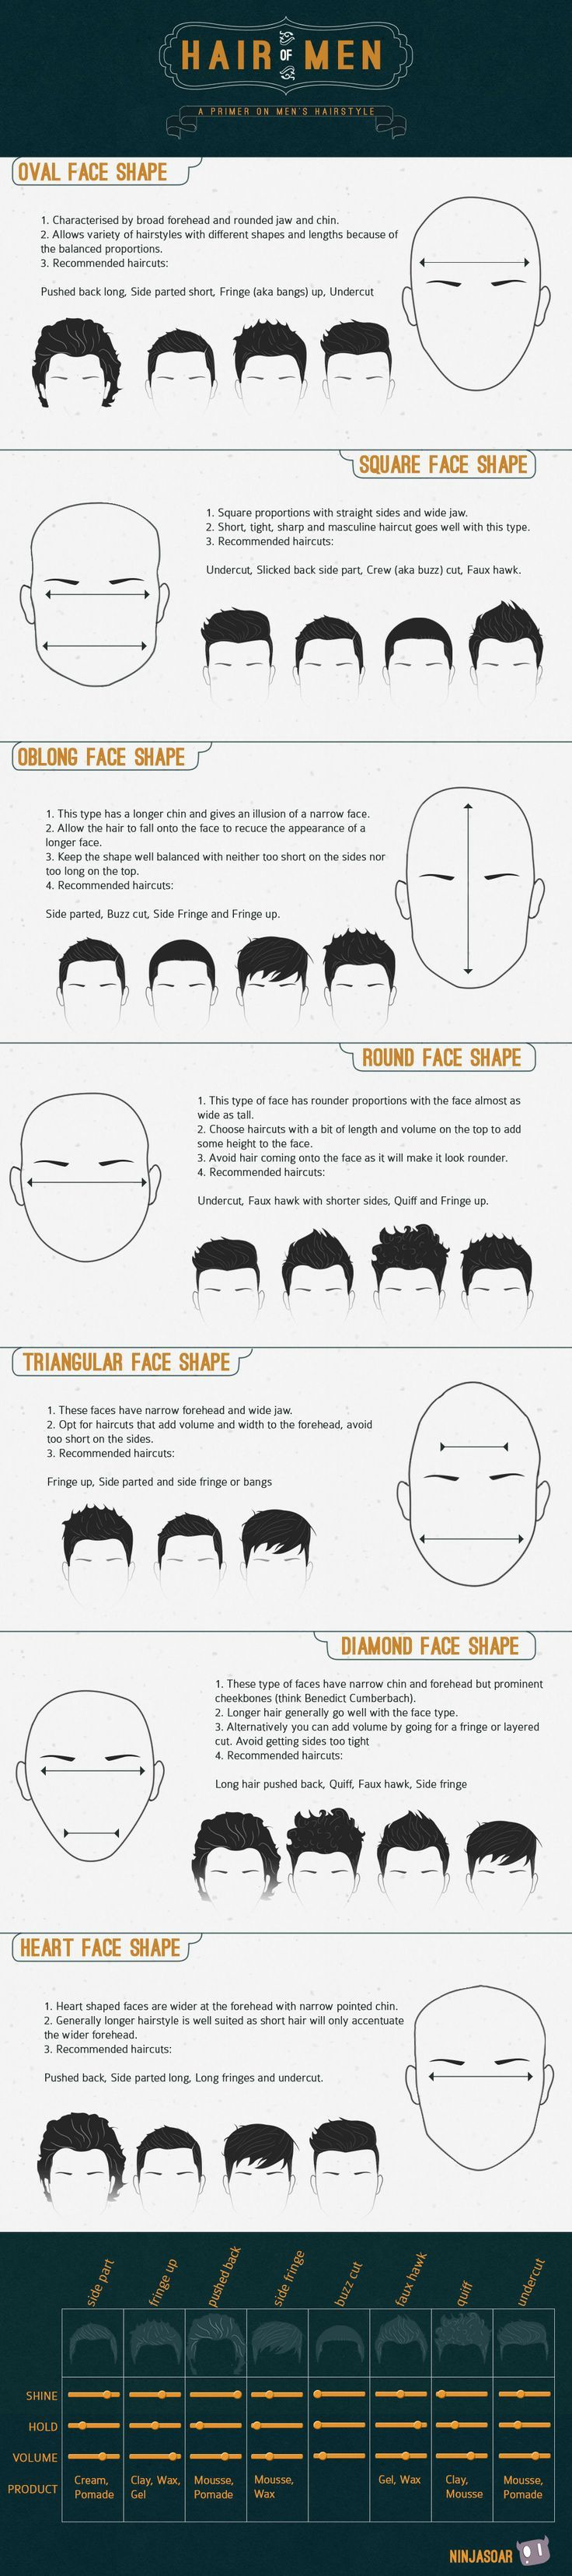 A Beginner's Guide to Men's Hairstyles. (X-Post r/malehairadvice)